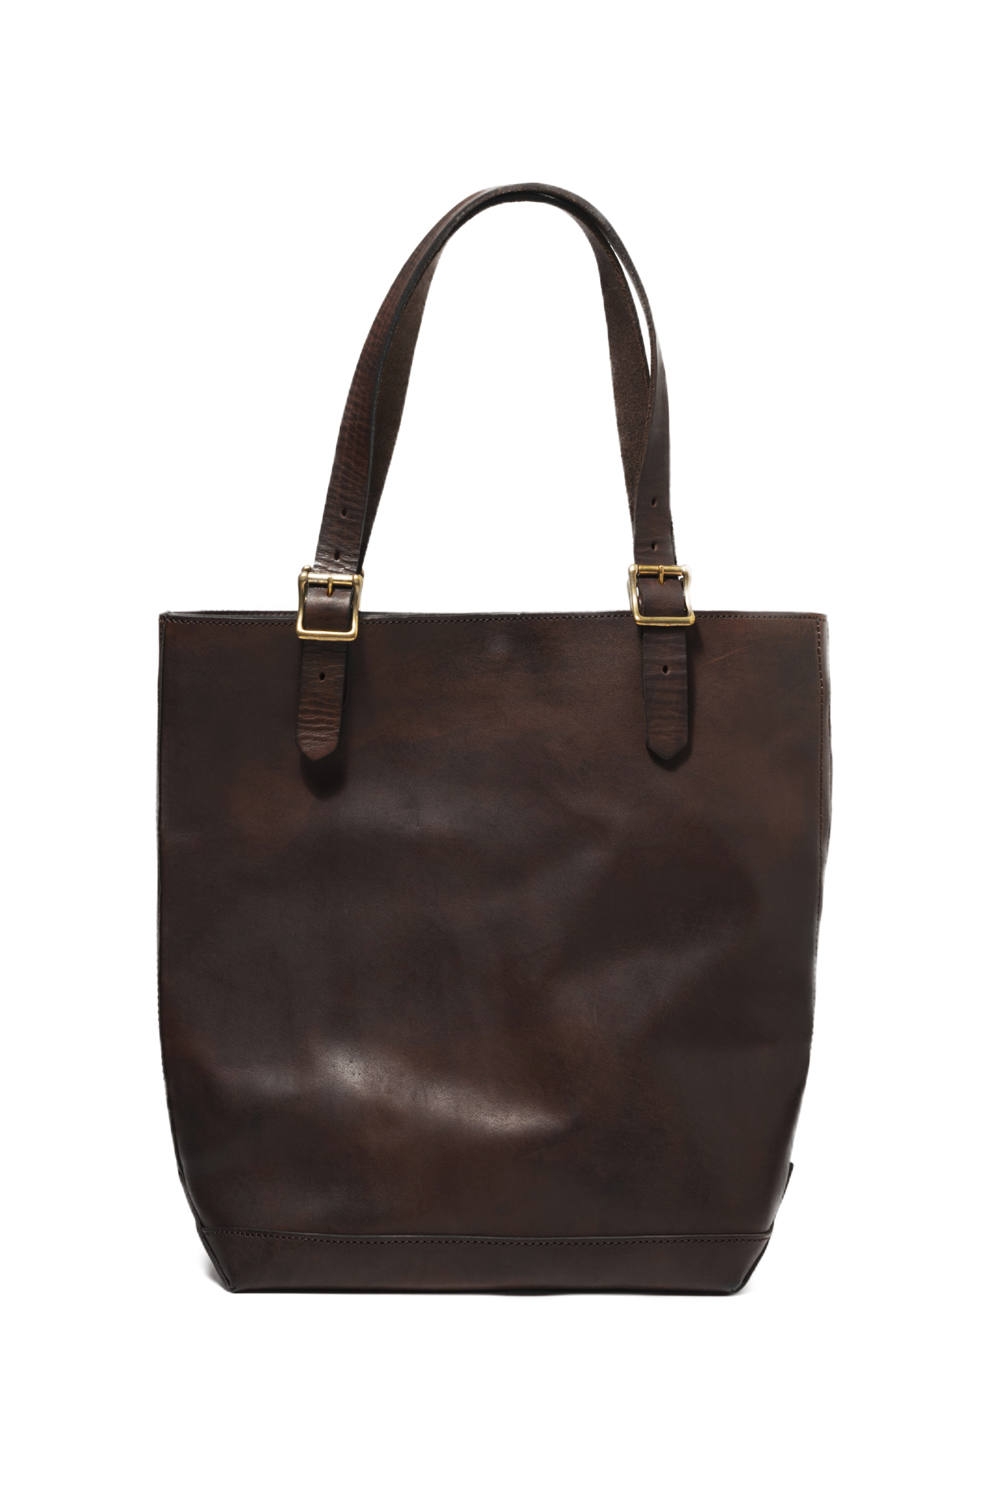 【19AW】レザートラベルトートバッグ - ハイト [ブラウン] / LEATHER TRAVEL TOTE BAG - HEIGHT [BROWN]